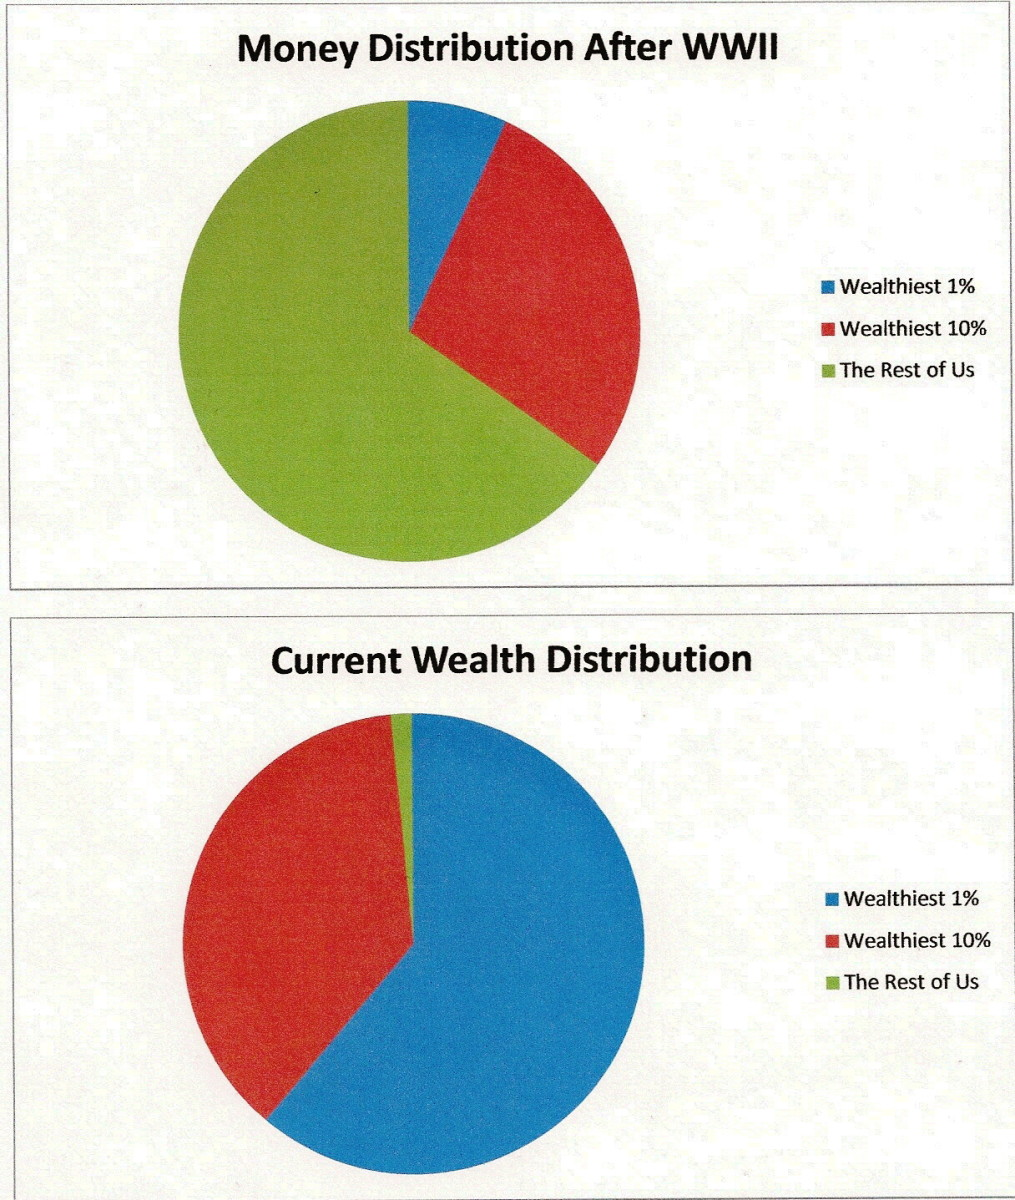 As the pie chart indicates, this is one of the worst times for disparity of wealth in our nation's history.